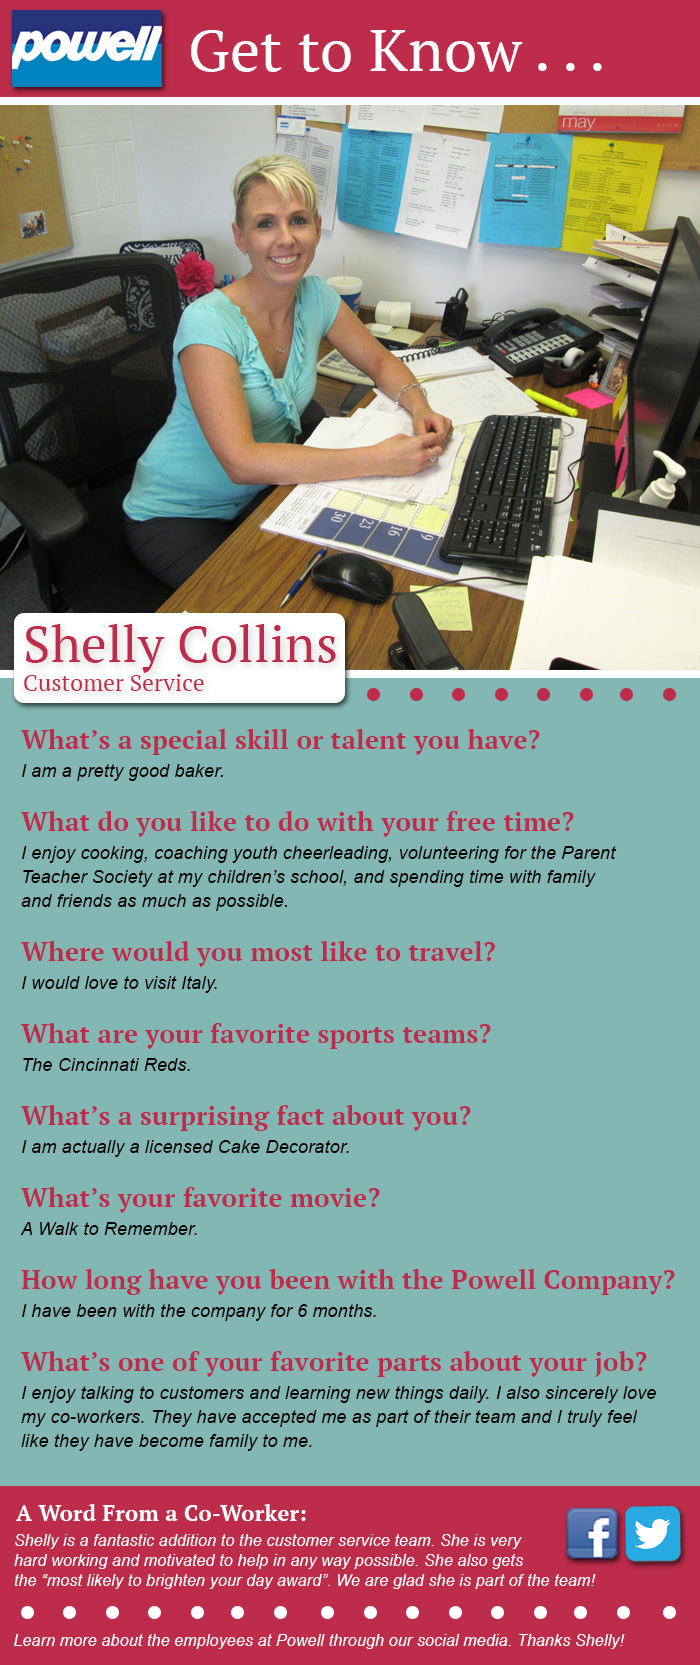 5-15 get to know shelly